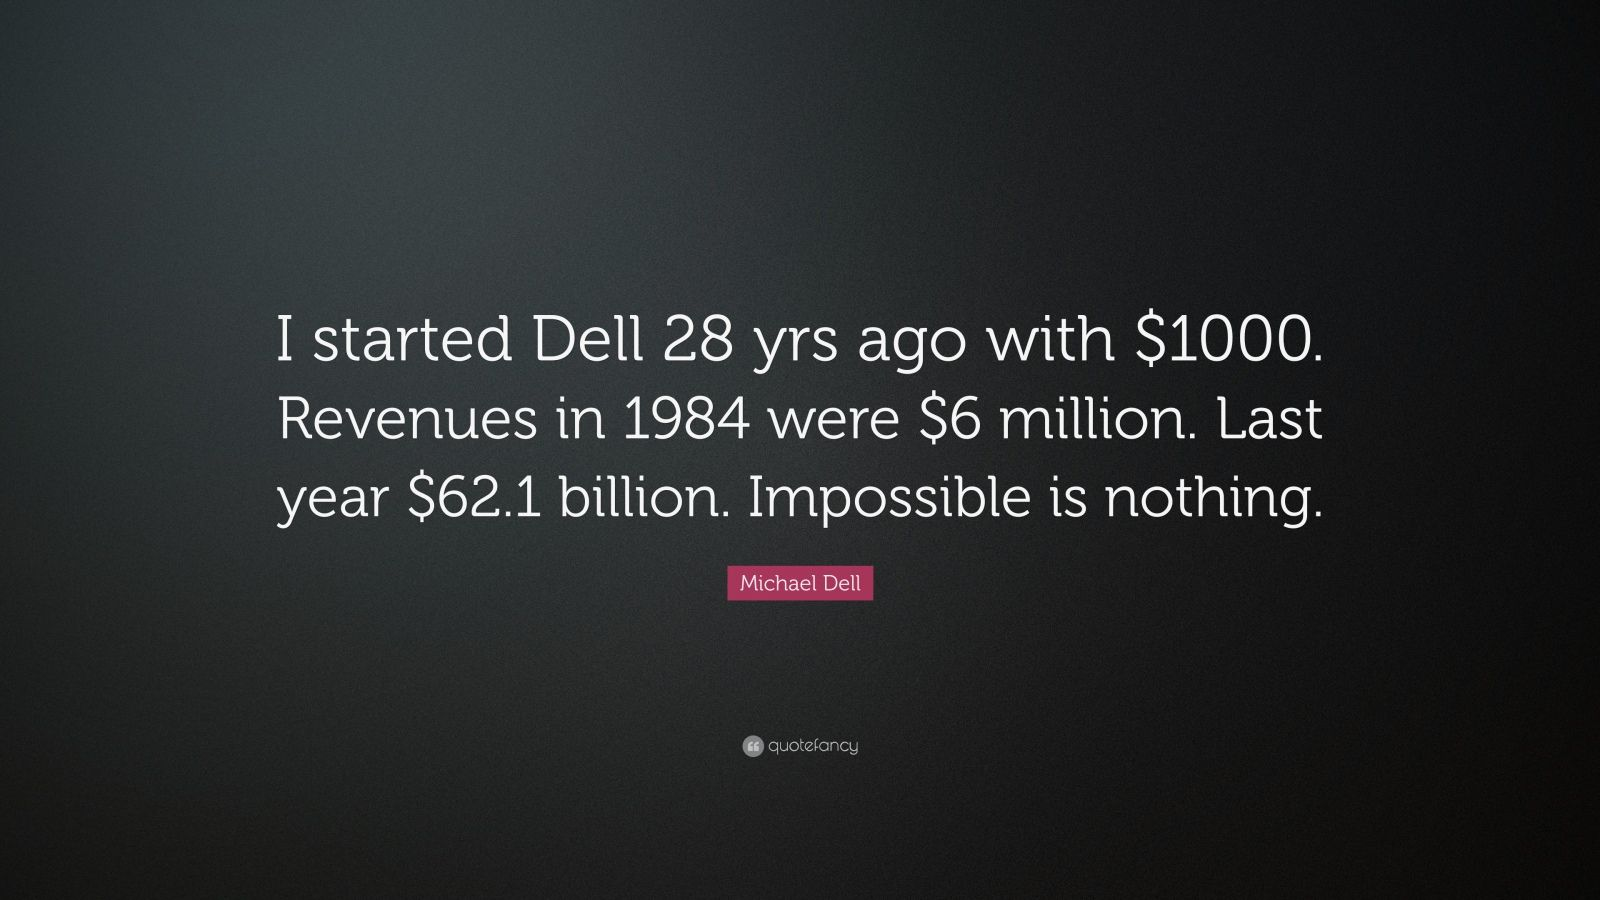 "Michael Dell Quote: ""I started Dell 28 yrs ago with $1000. Revenues in 1984 were $6 million. Last year $62.1 billion. Impossible is nothing."""